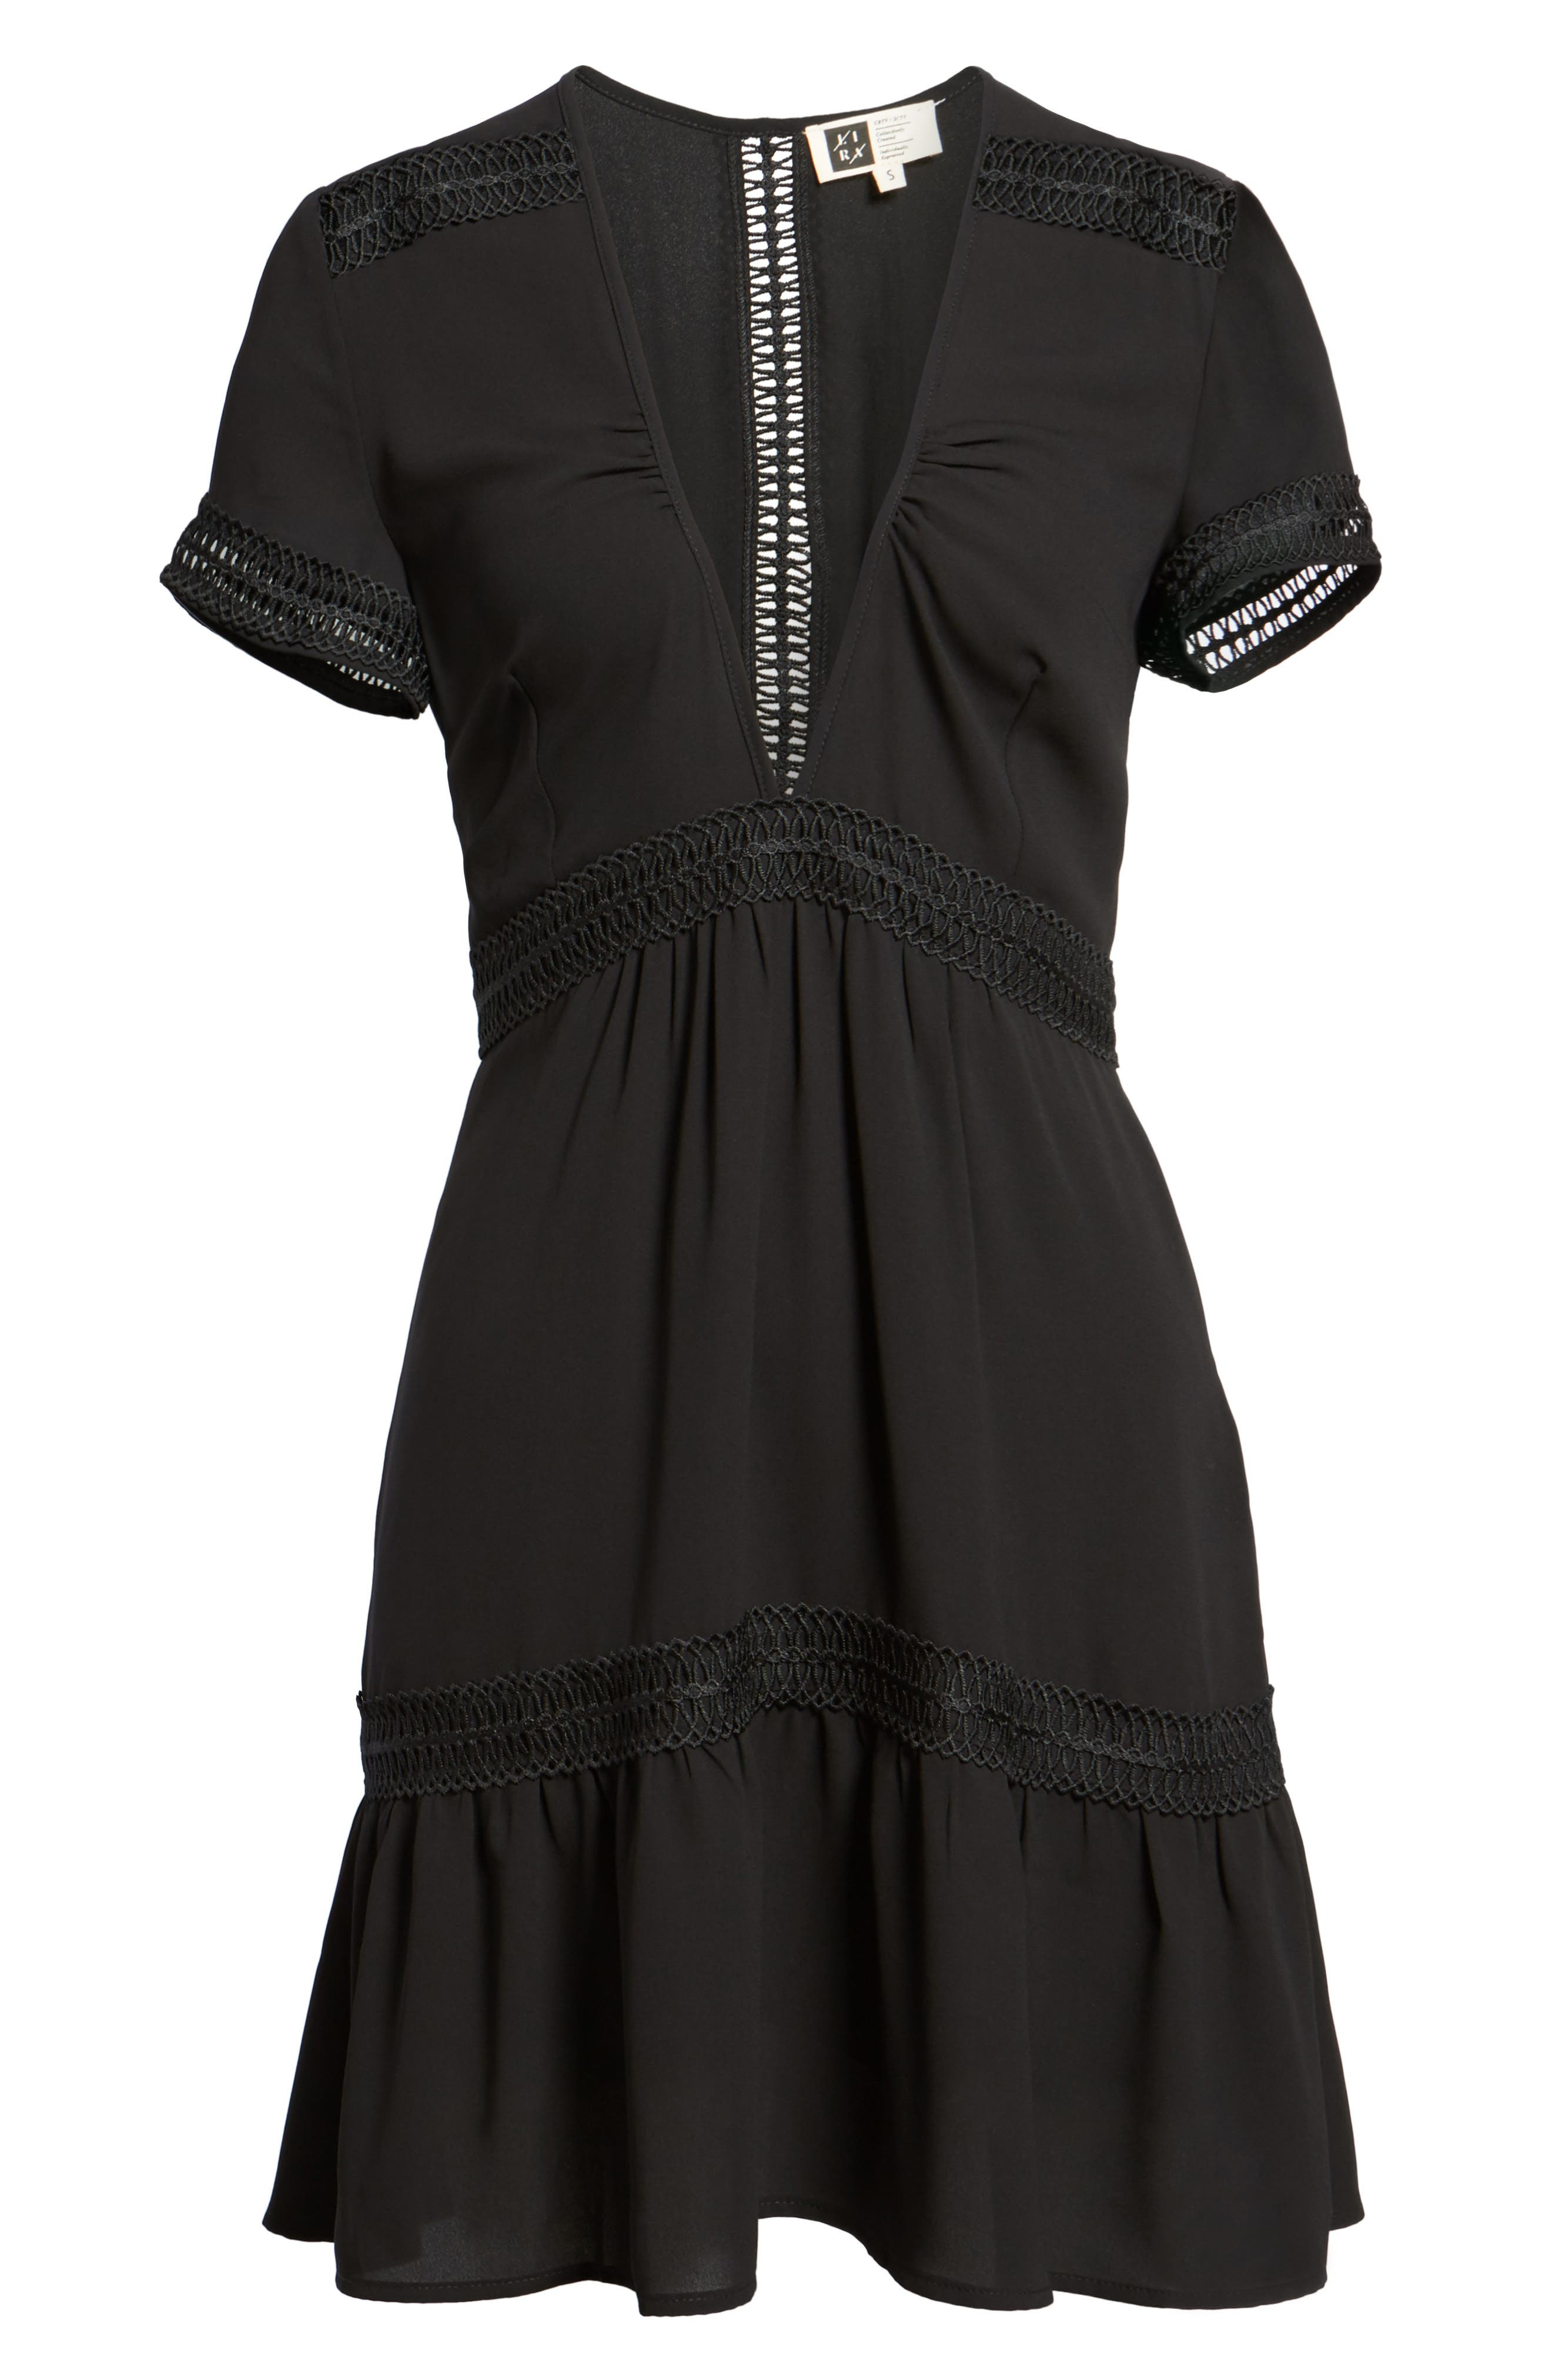 Take Hold Tiered Dress,                             Alternate thumbnail 6, color,                             001